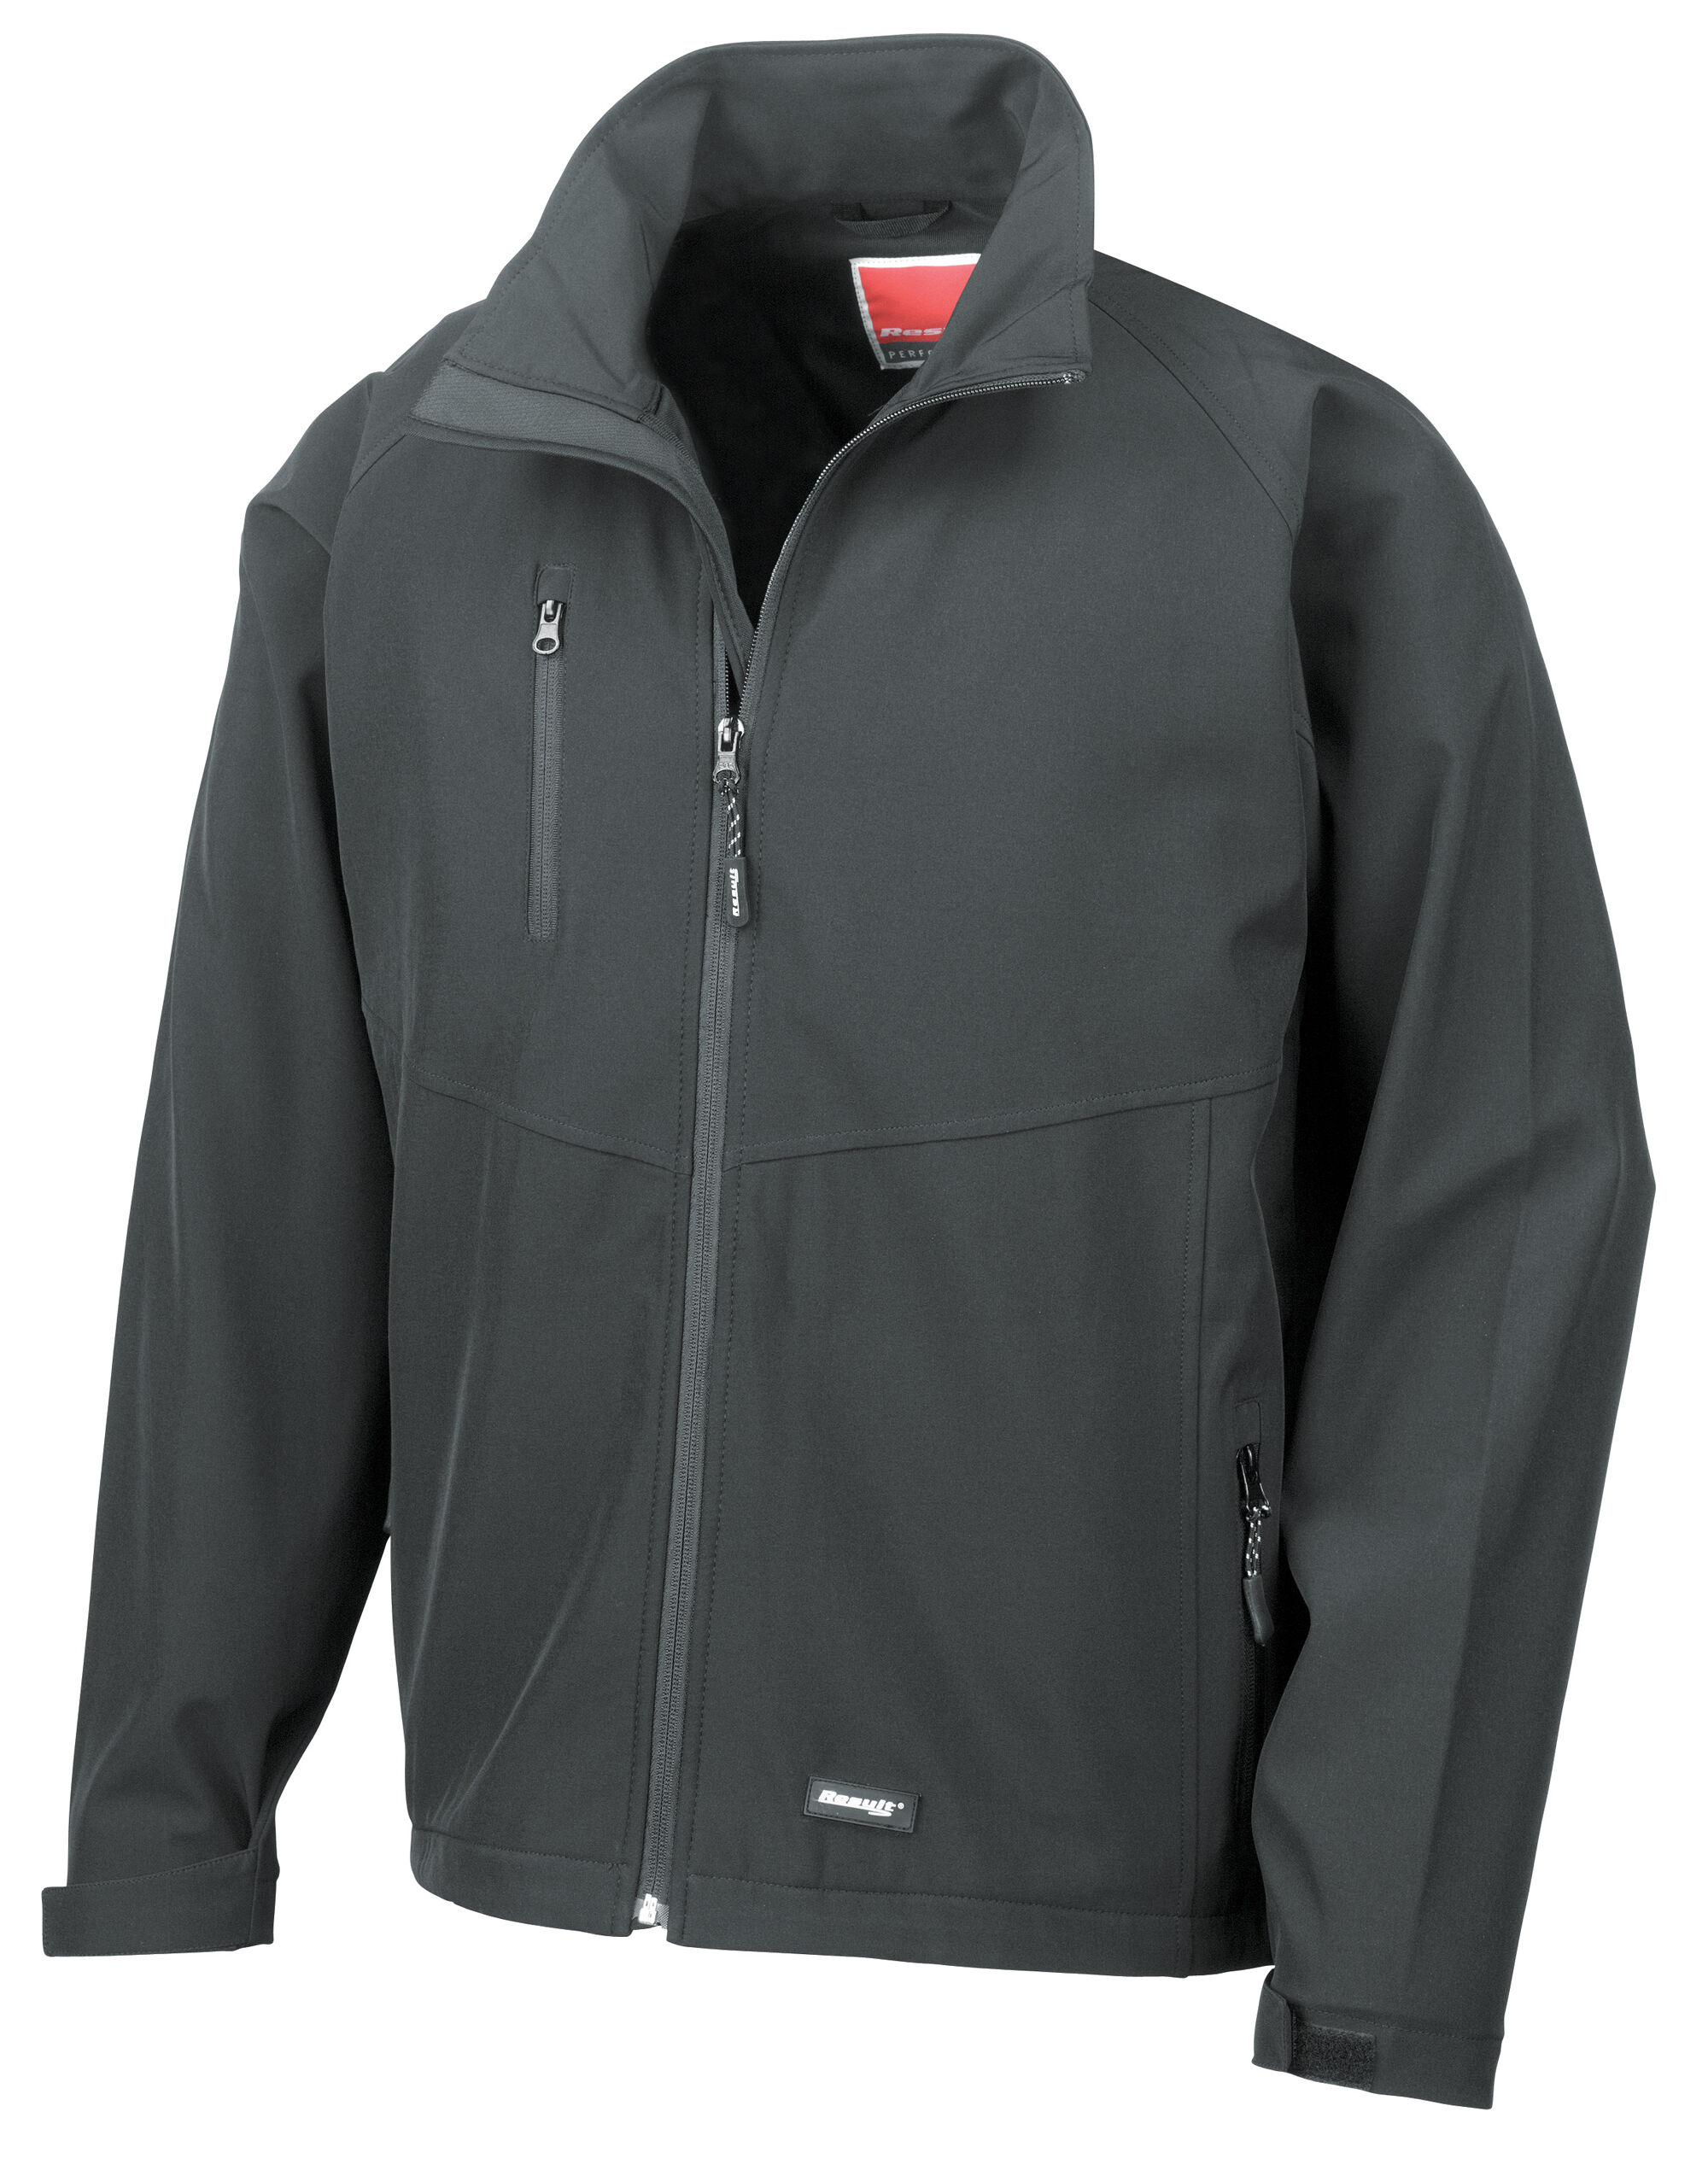 2 Layer Base Softshell Jacket